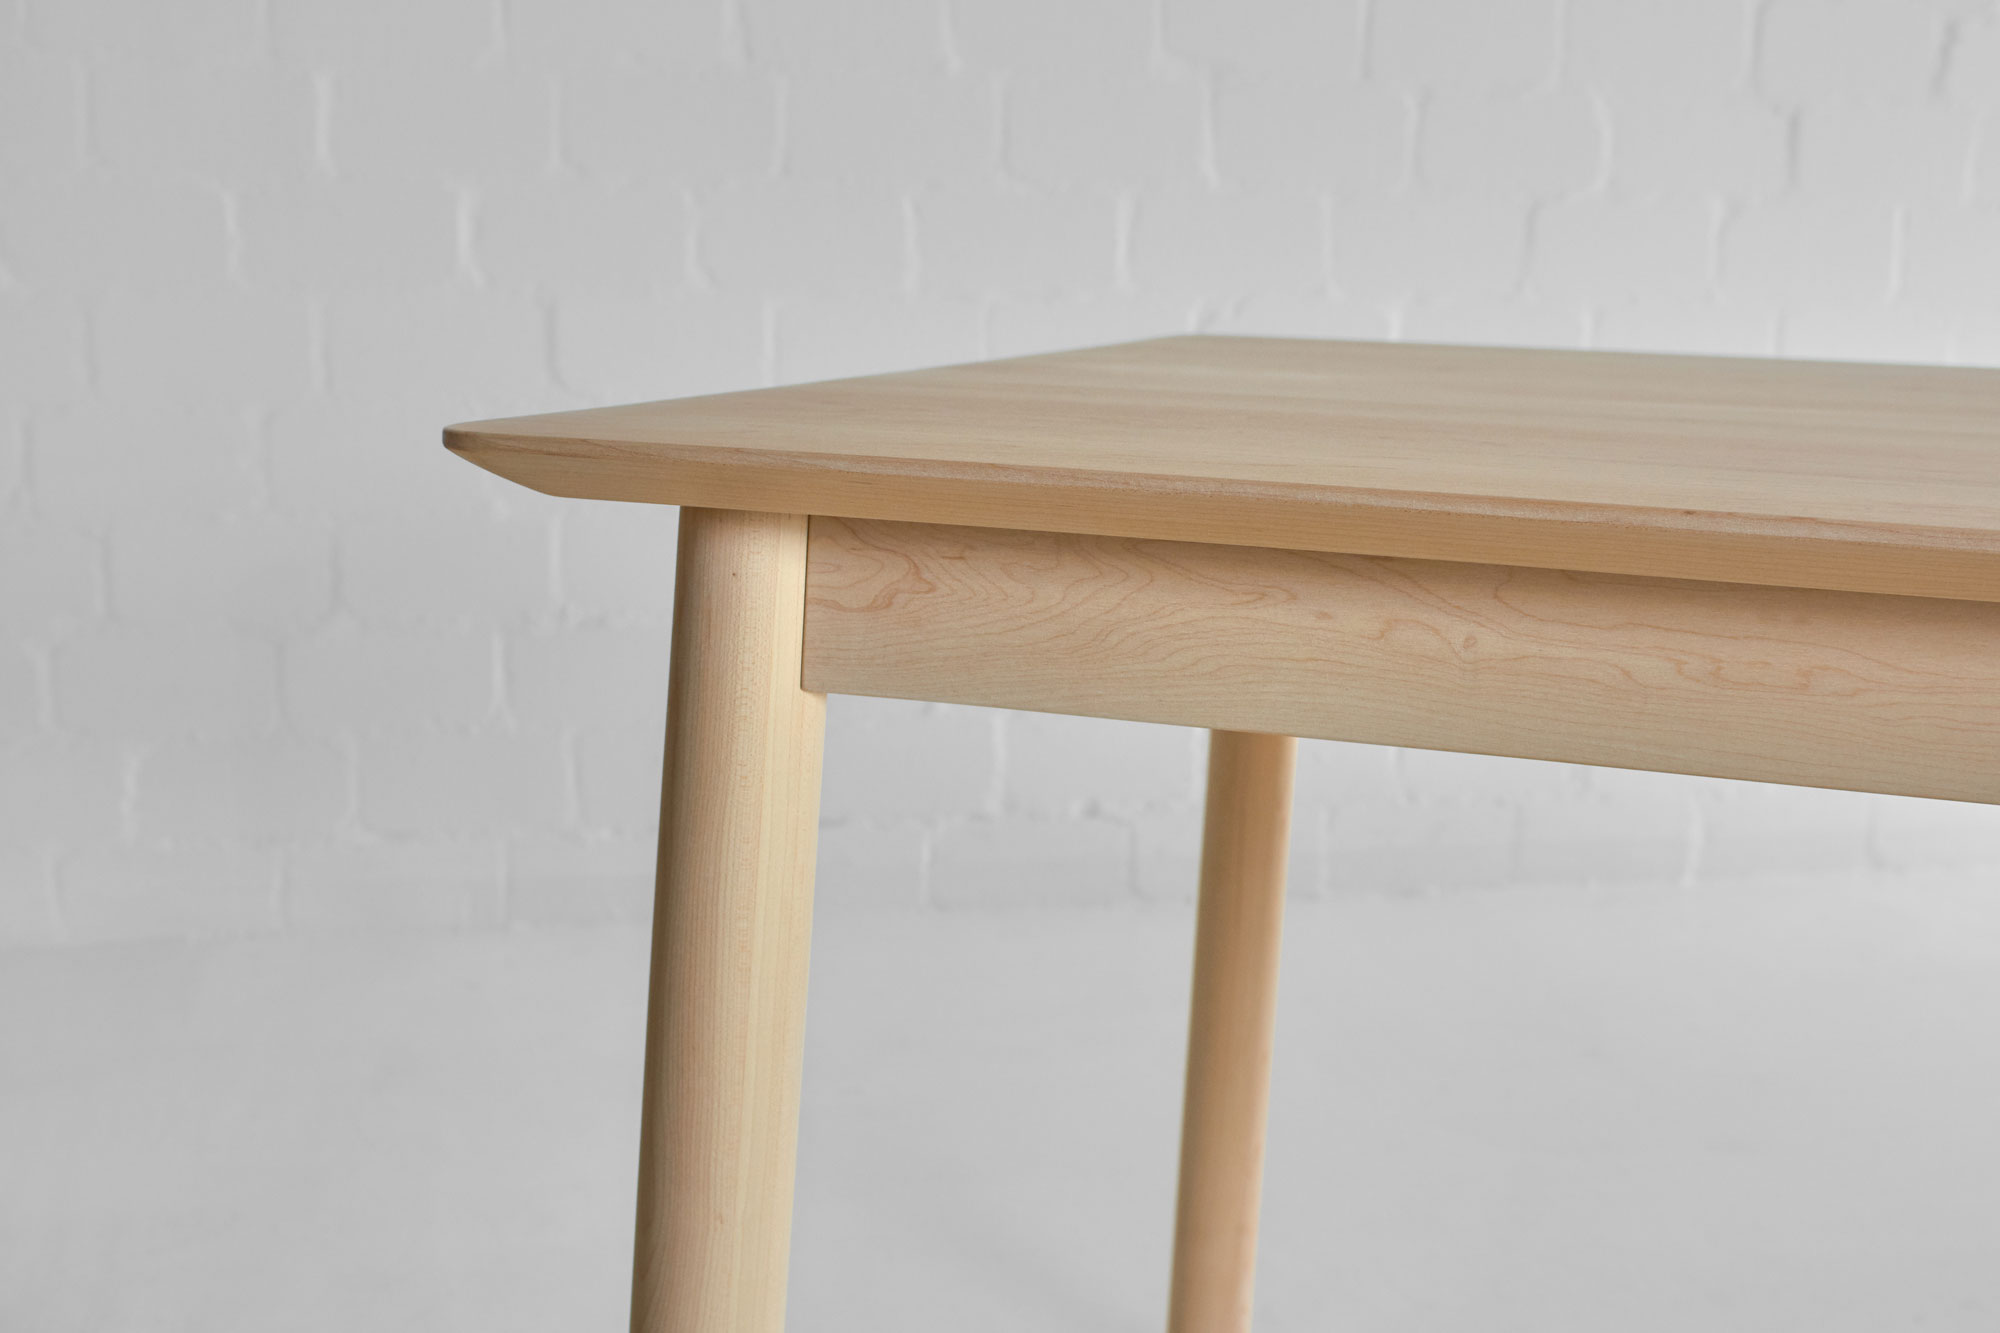 Style Wood Table LOCA 0301 custom made in solid wood by vitamin design